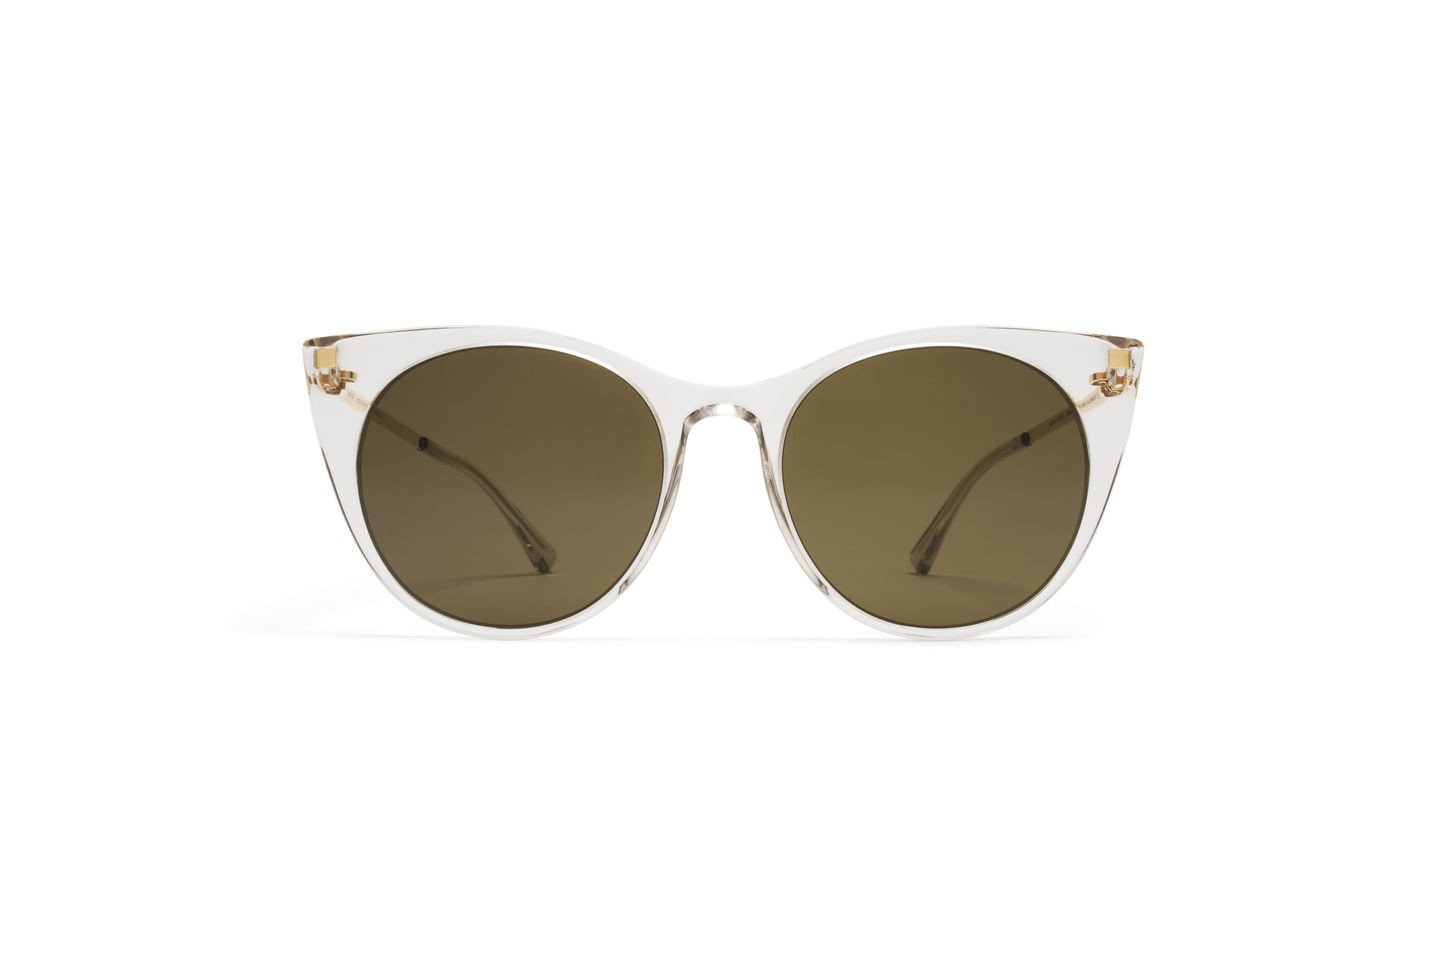 Cool Sunglasses for Women Alexander Daas